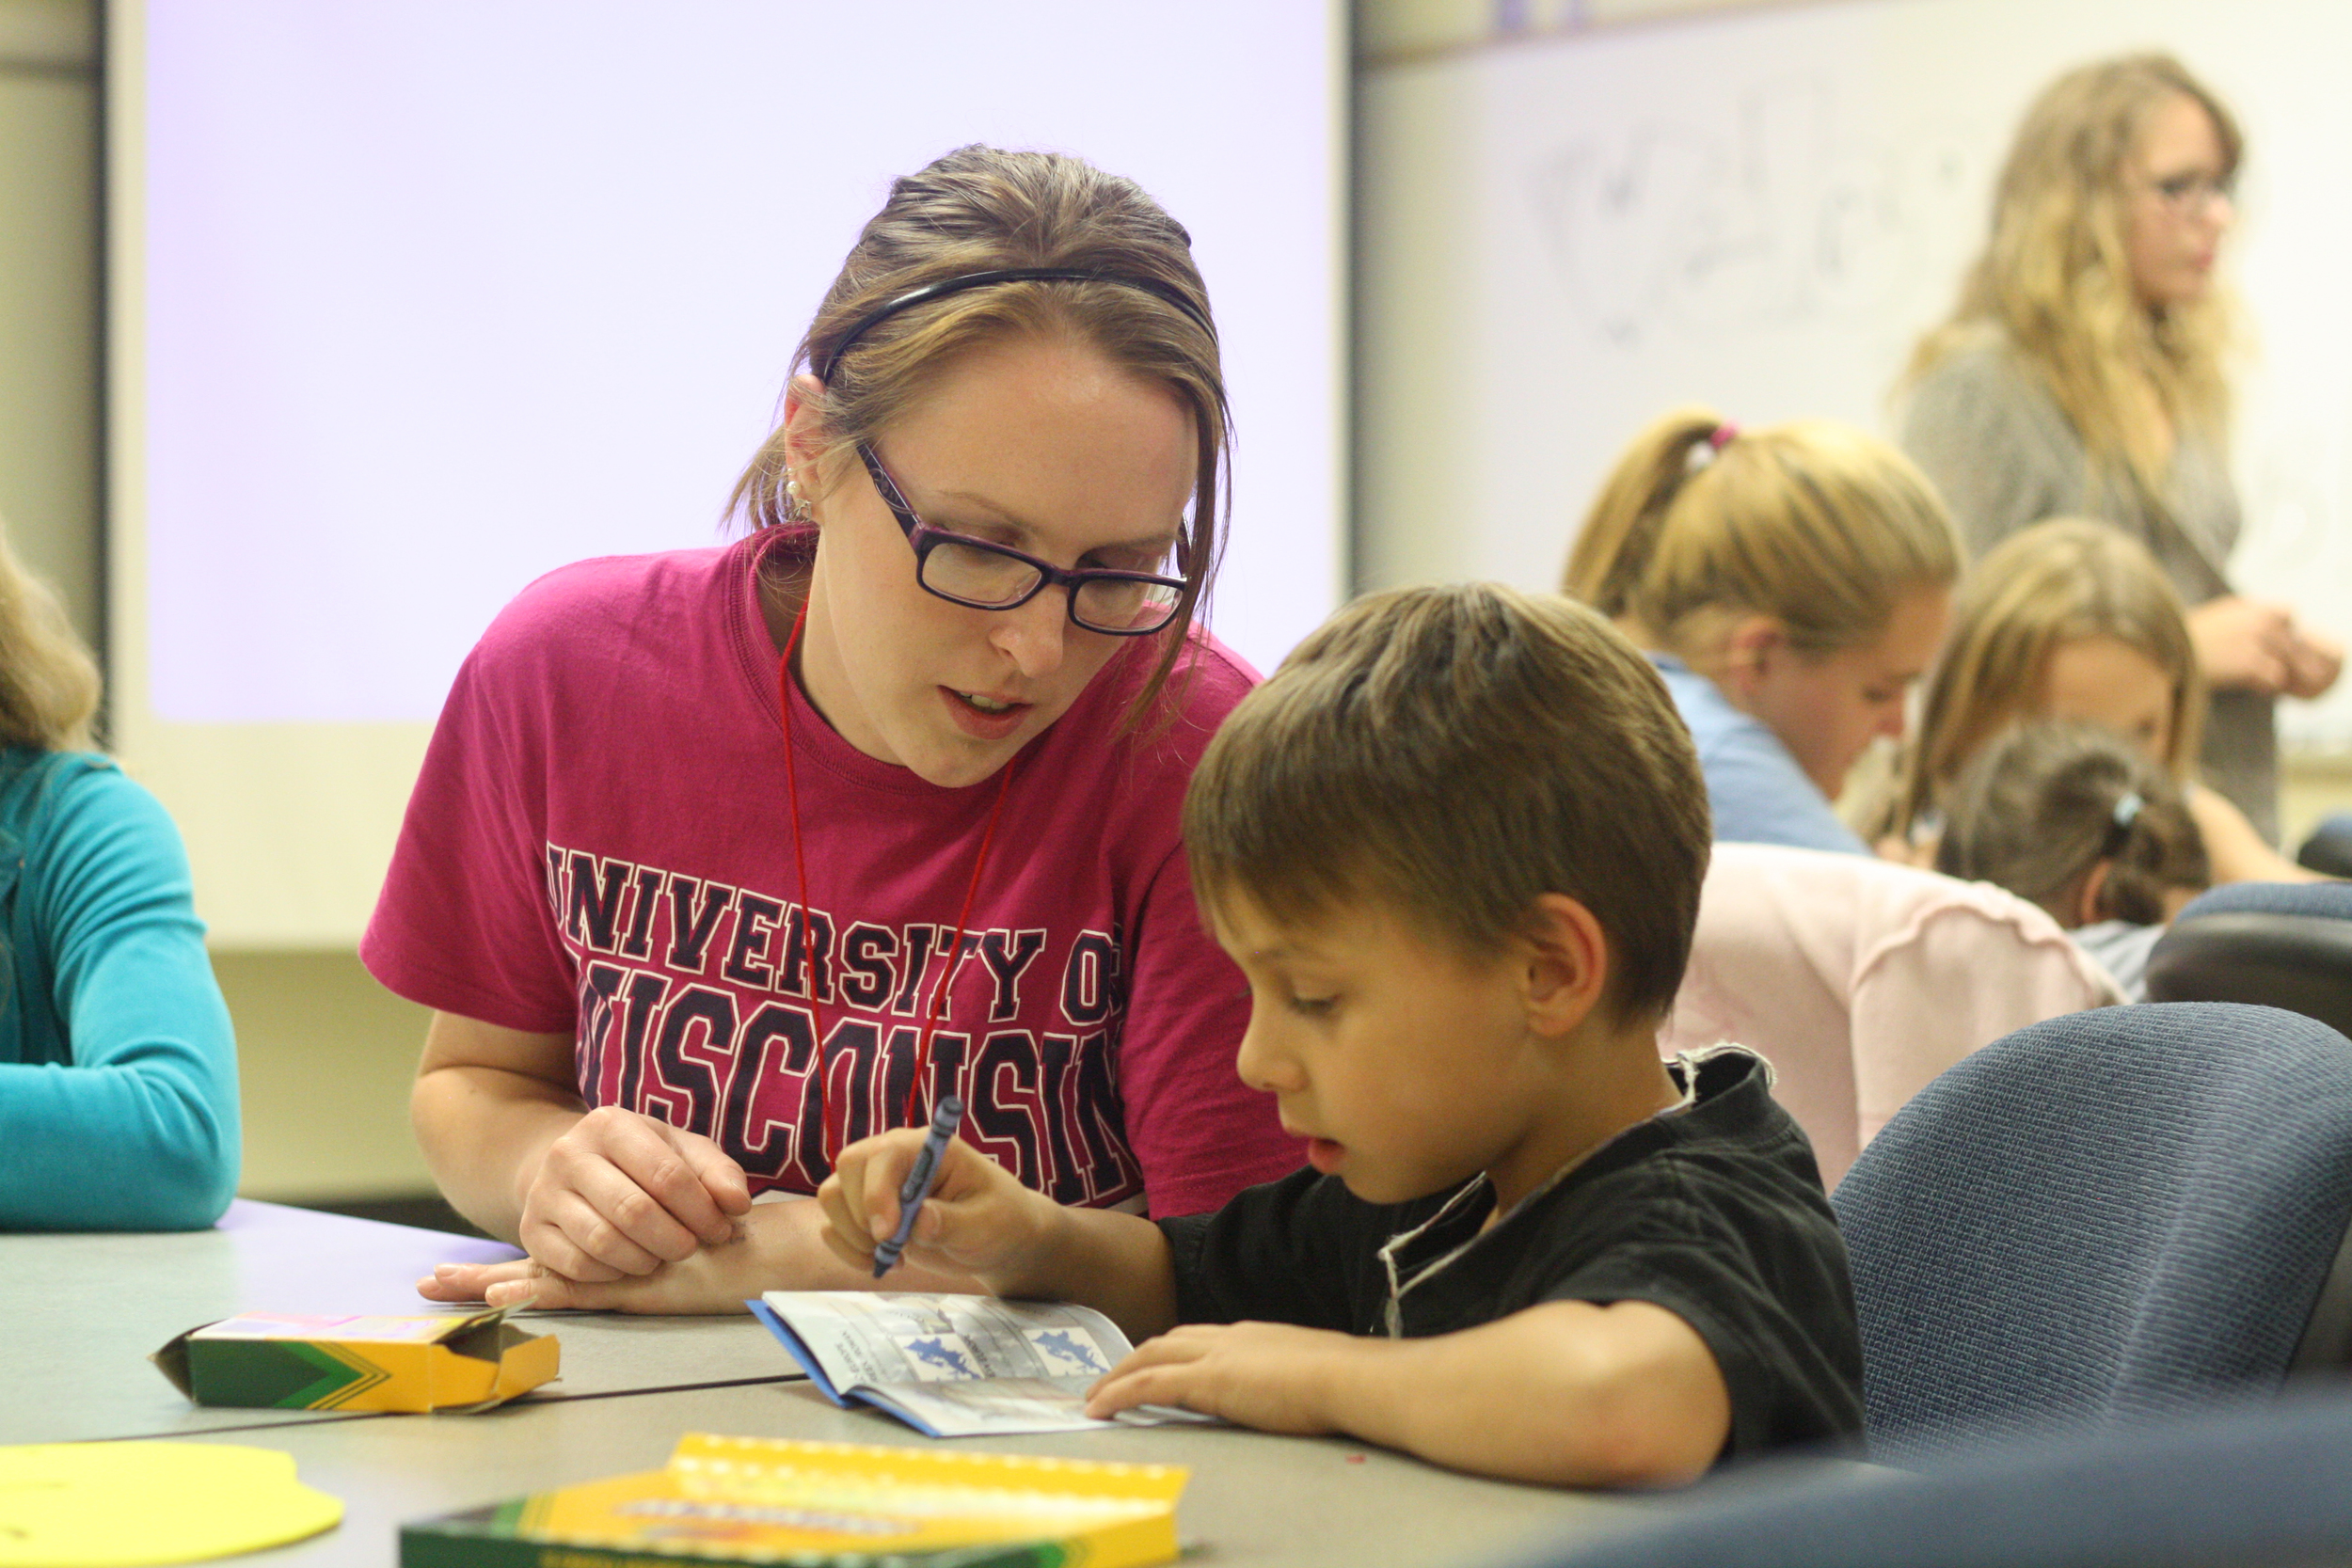 Art Education student Lucy Pronschinske gains additional teaching experience at the Children's Art Club at UW-Stout.